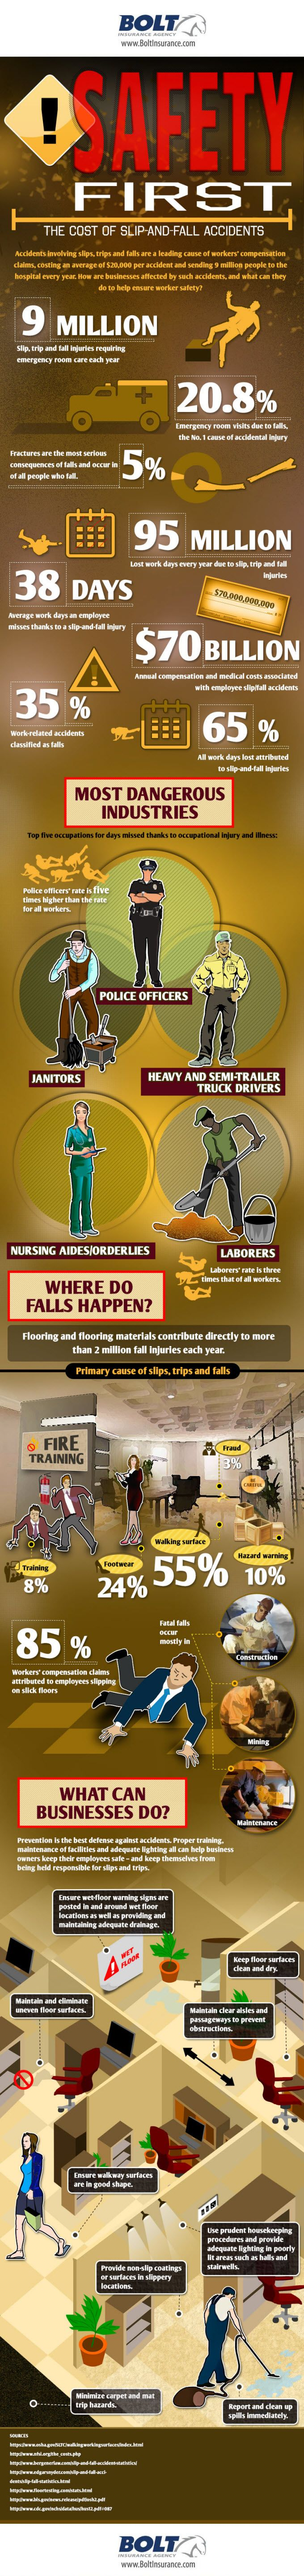 Safety First: The Cost of Slip-and-Fall Accidents Infographic www.mcdonaldrogerslaw.com